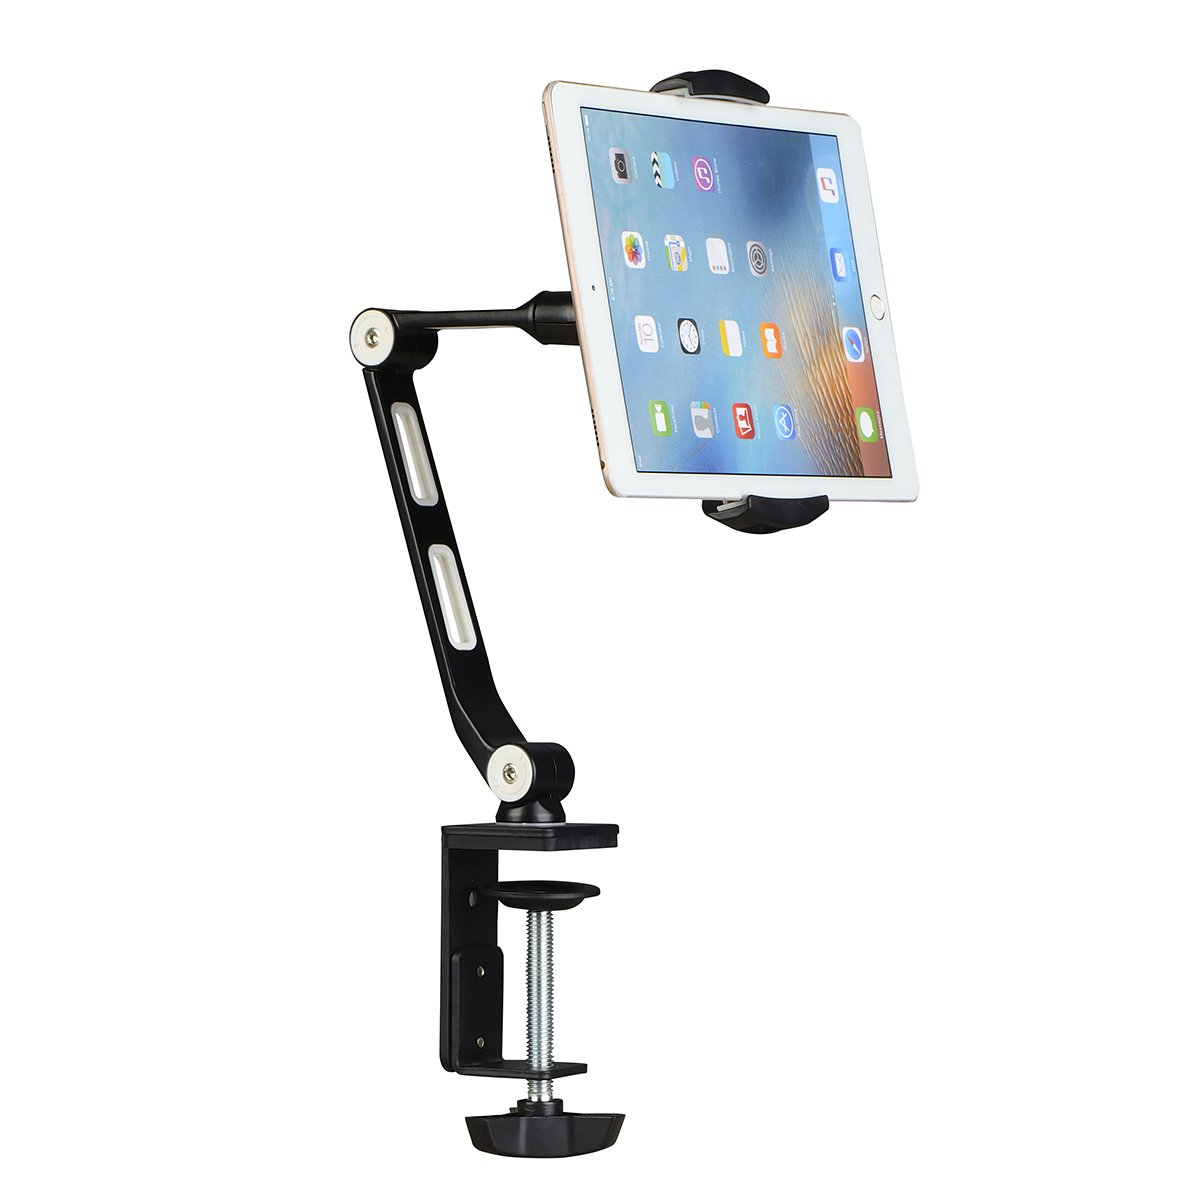 suptek Aluminum Tablet Desk Mount Stand 360° Flexible Cell Phone Holder for iPad, iPhone, Samsung, Asus and More 4.7-11 inch Devices, Good for Bed, Kitchen, Office (YF208B) by suptek